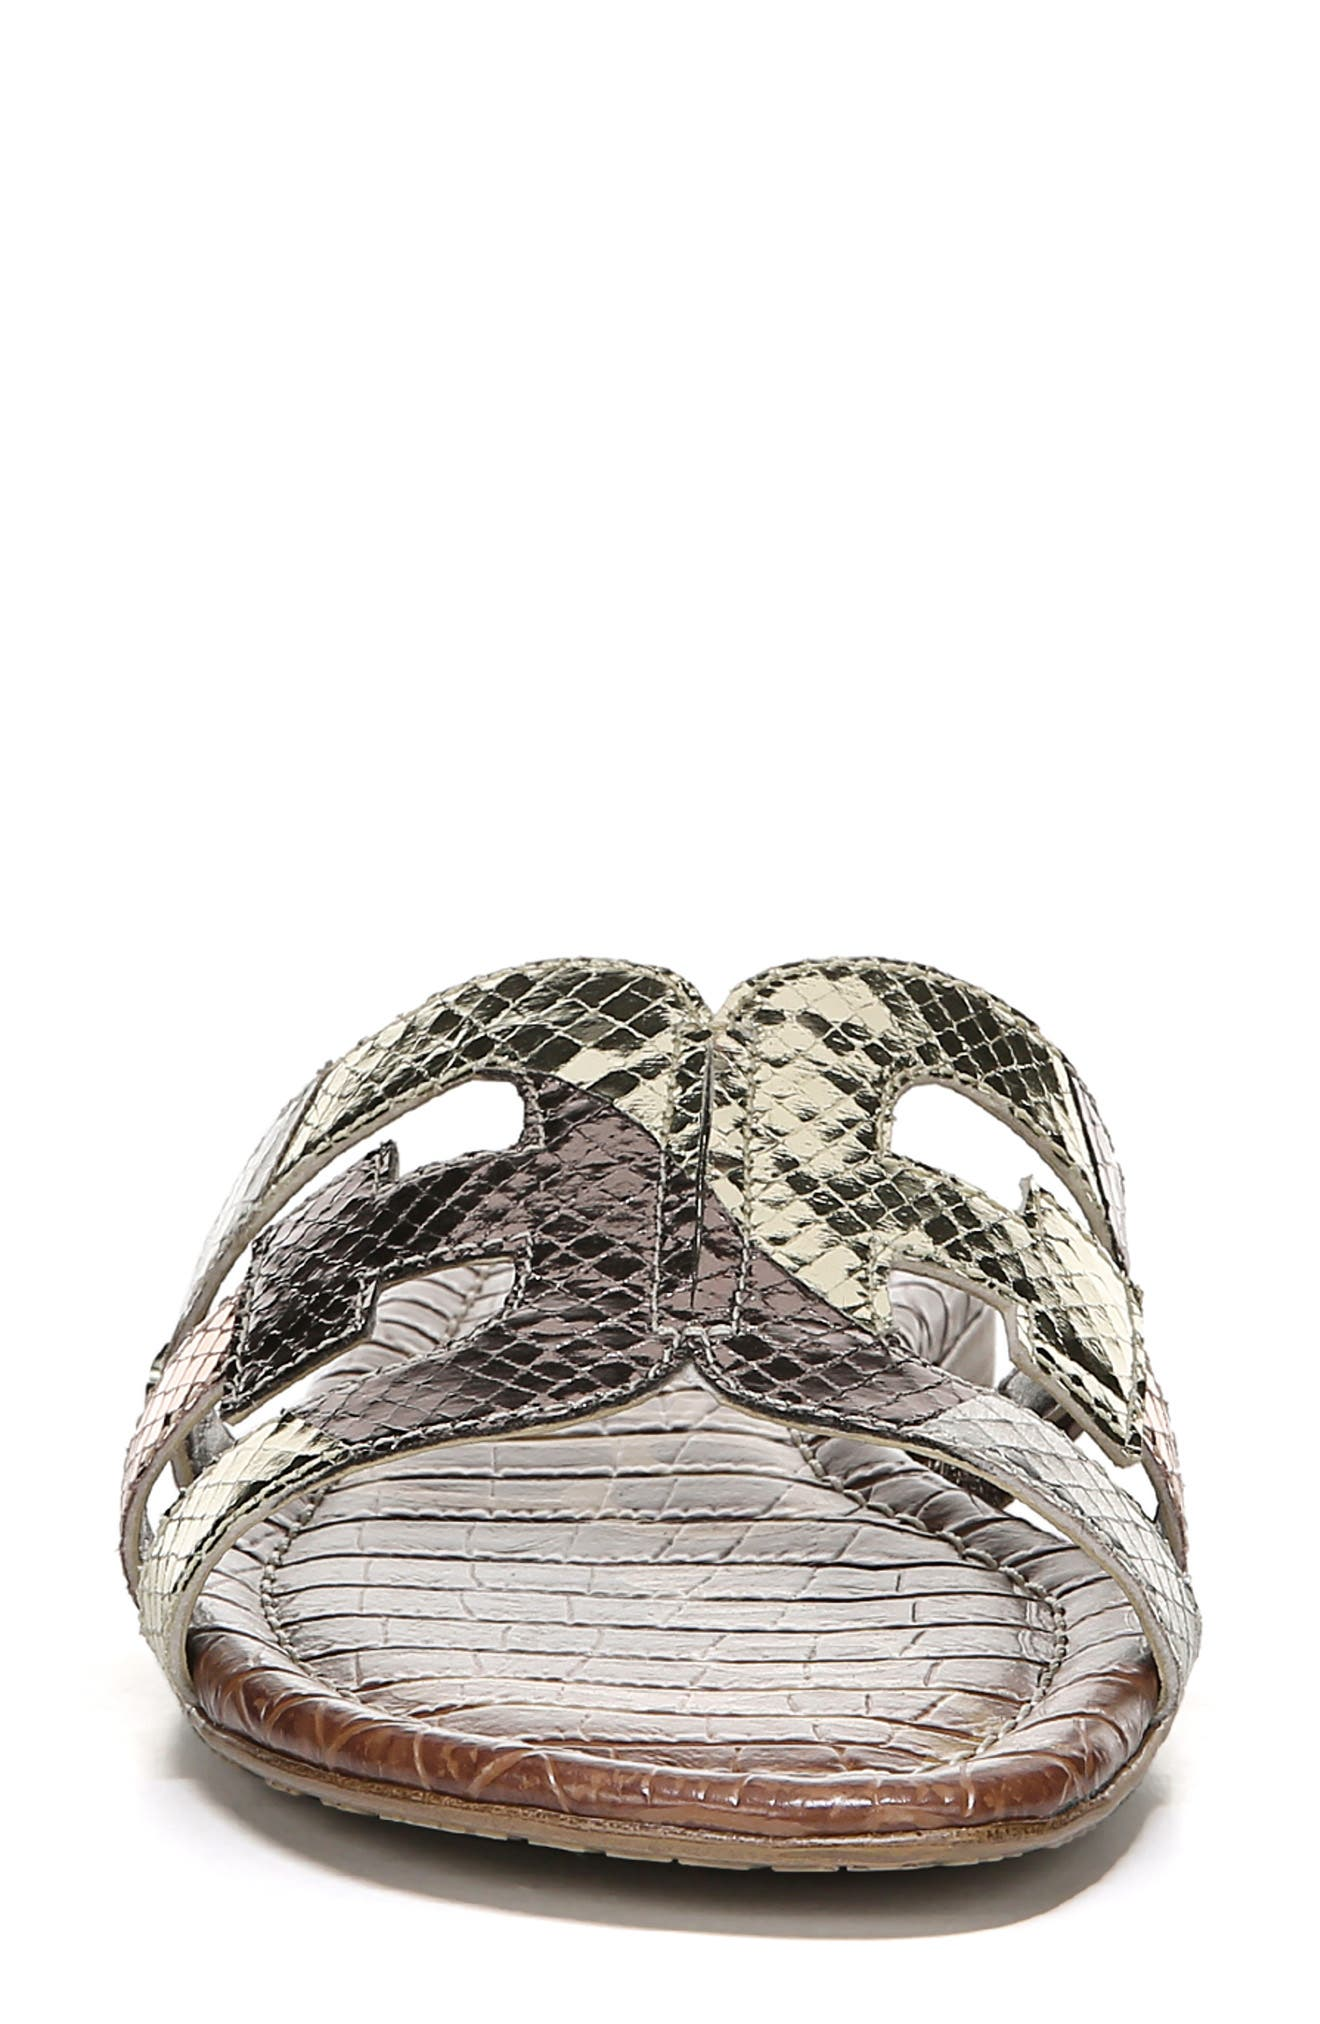 SAM EDELMAN, Bay Cutout Slide Sandal, Alternate thumbnail 3, color, METALLIC EMBOSSED LEATHER